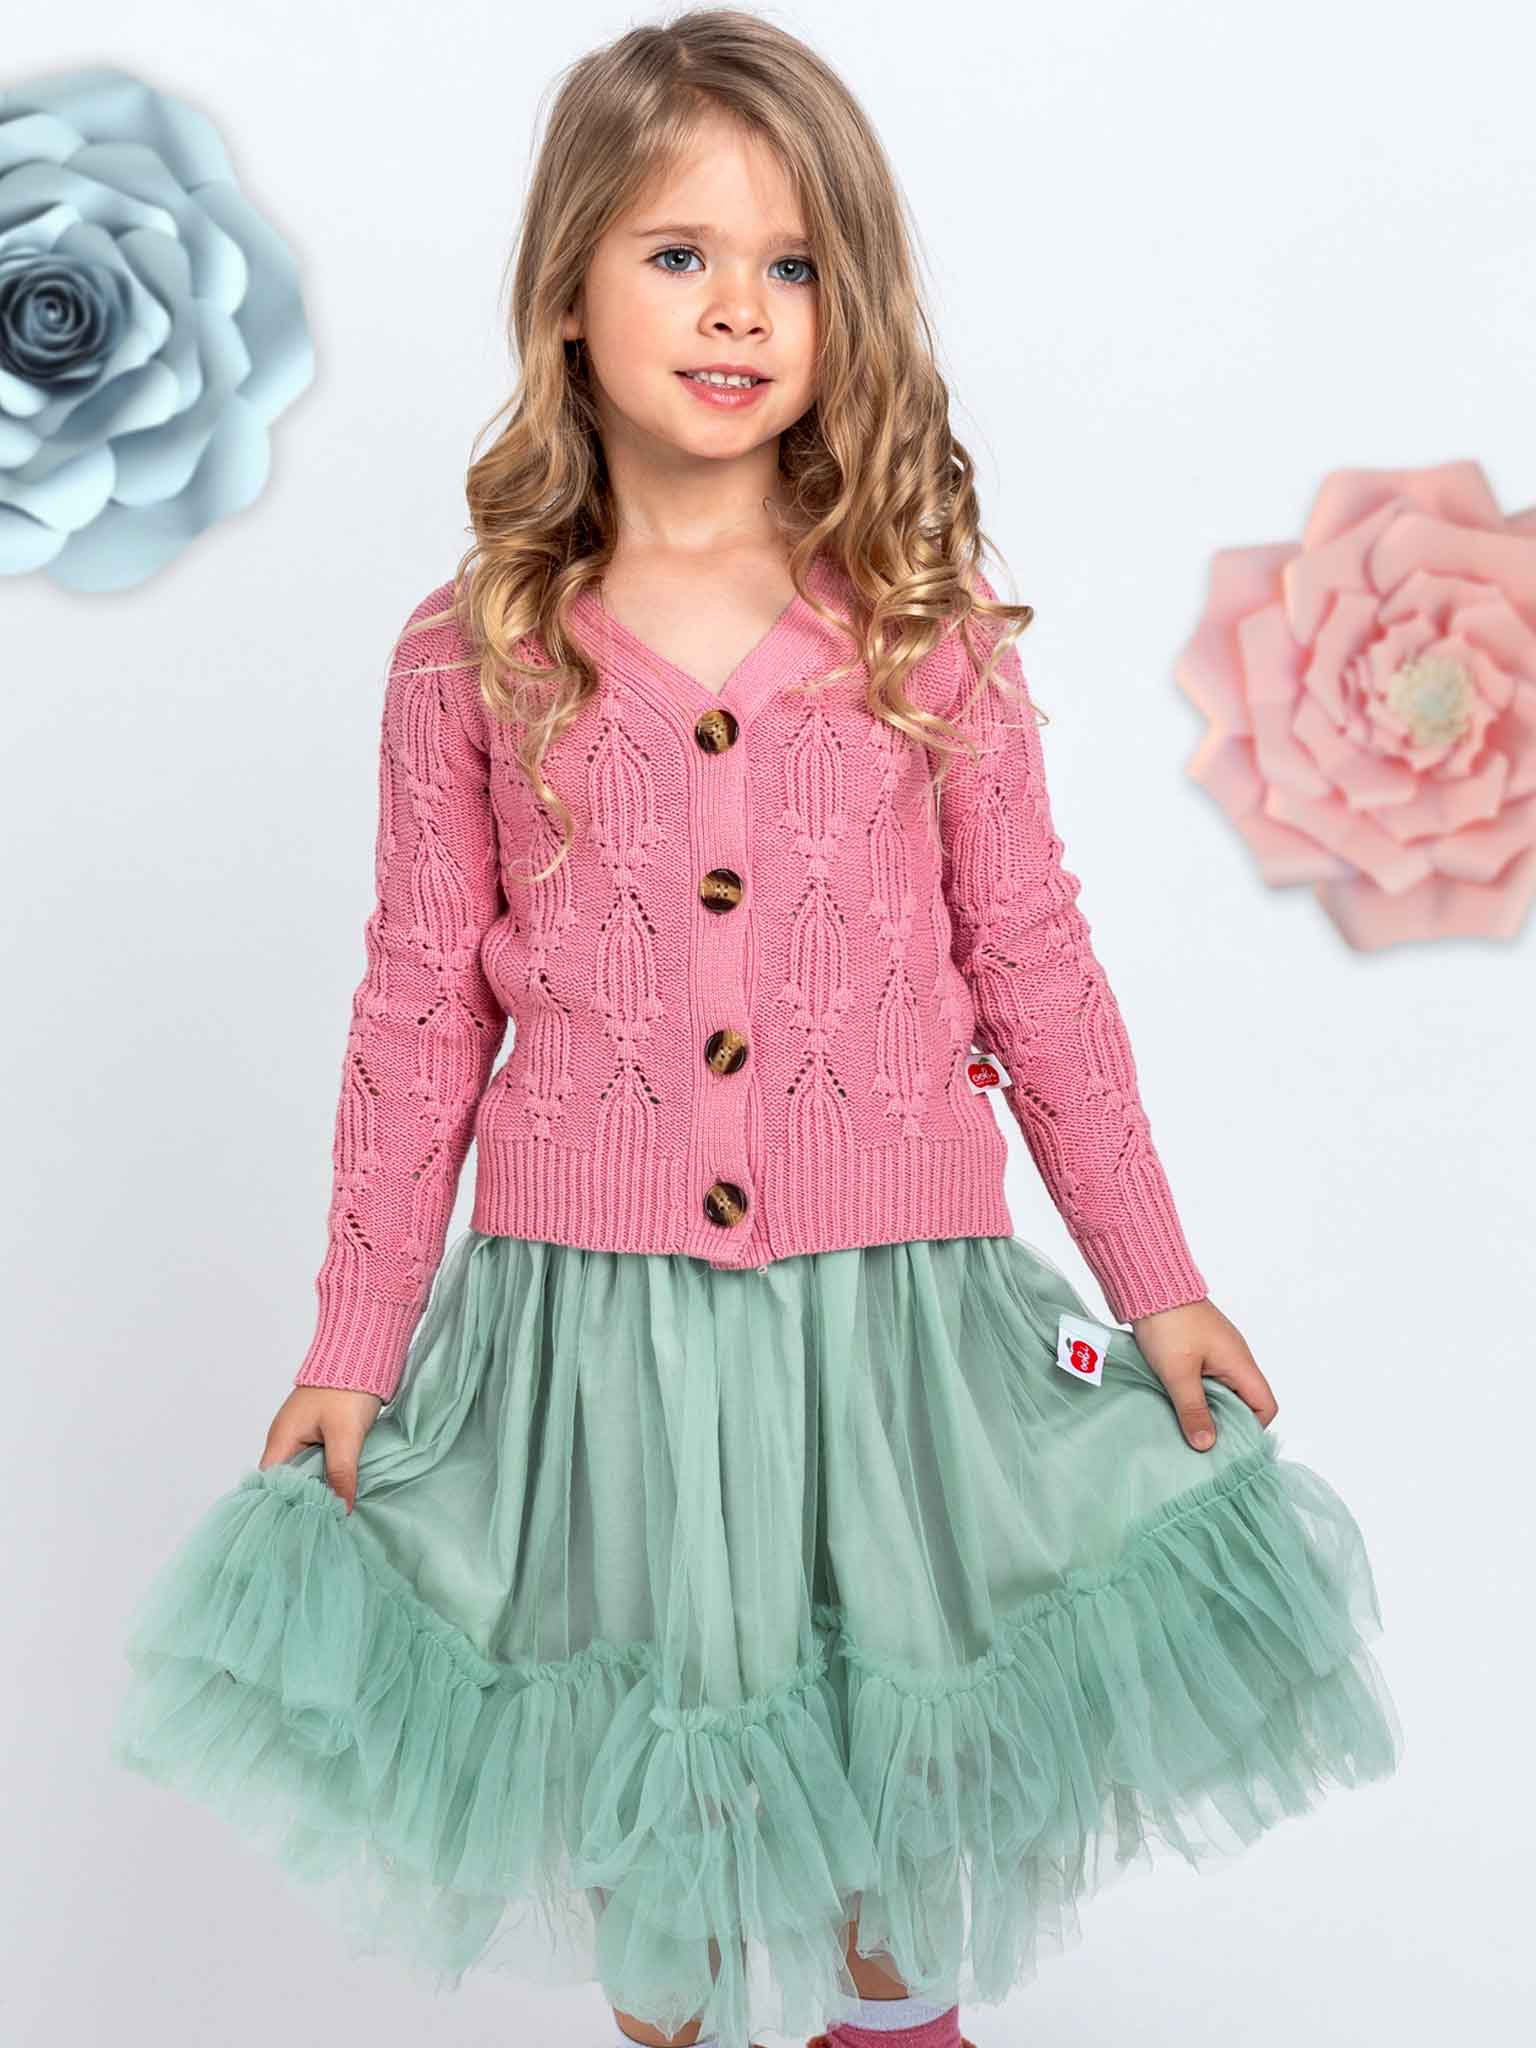 Teal tulle skirt for girls